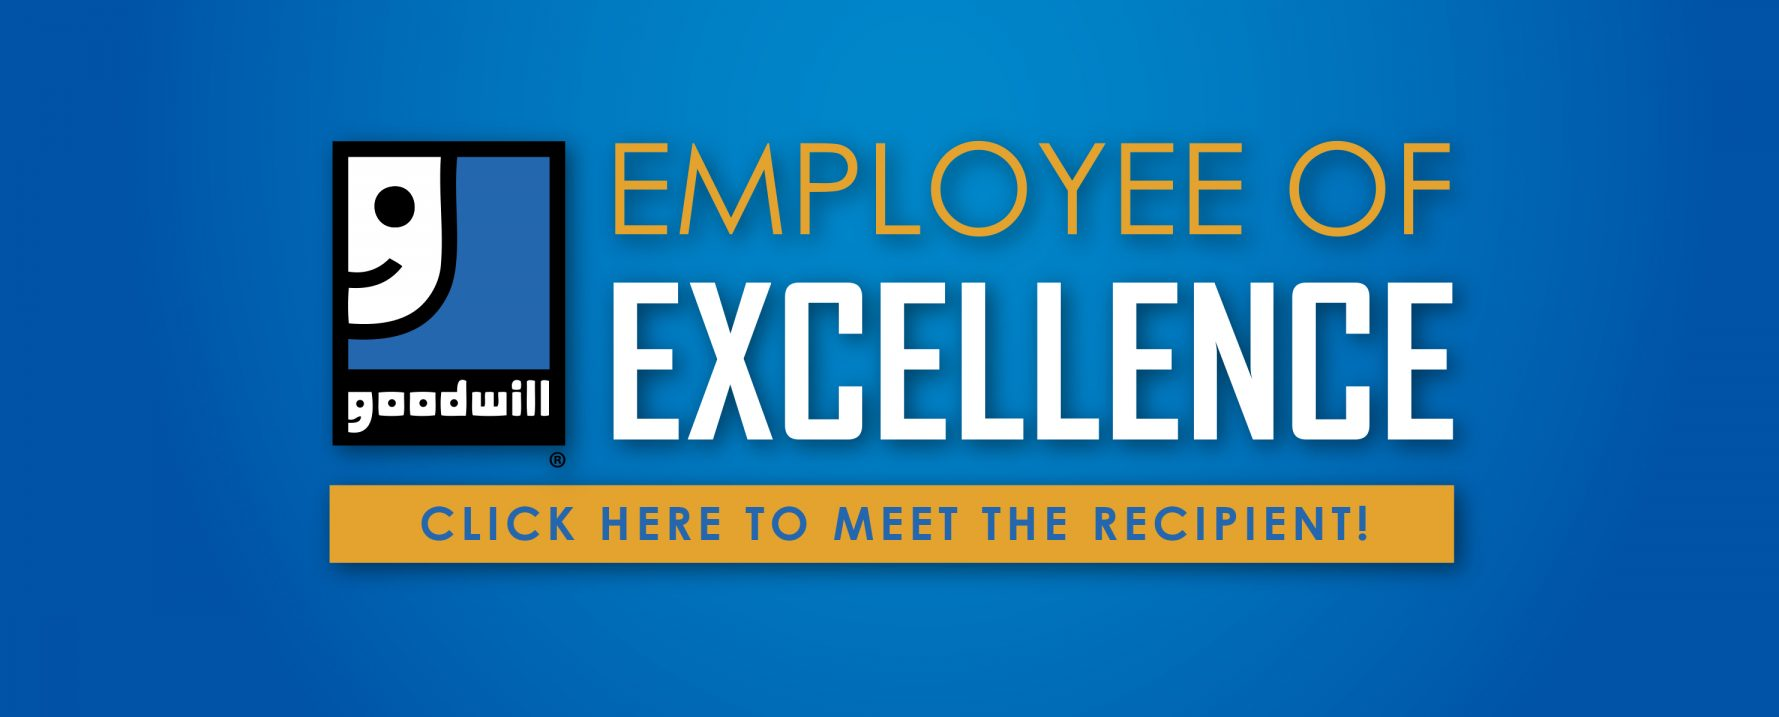 Employee of Excellence – Alex